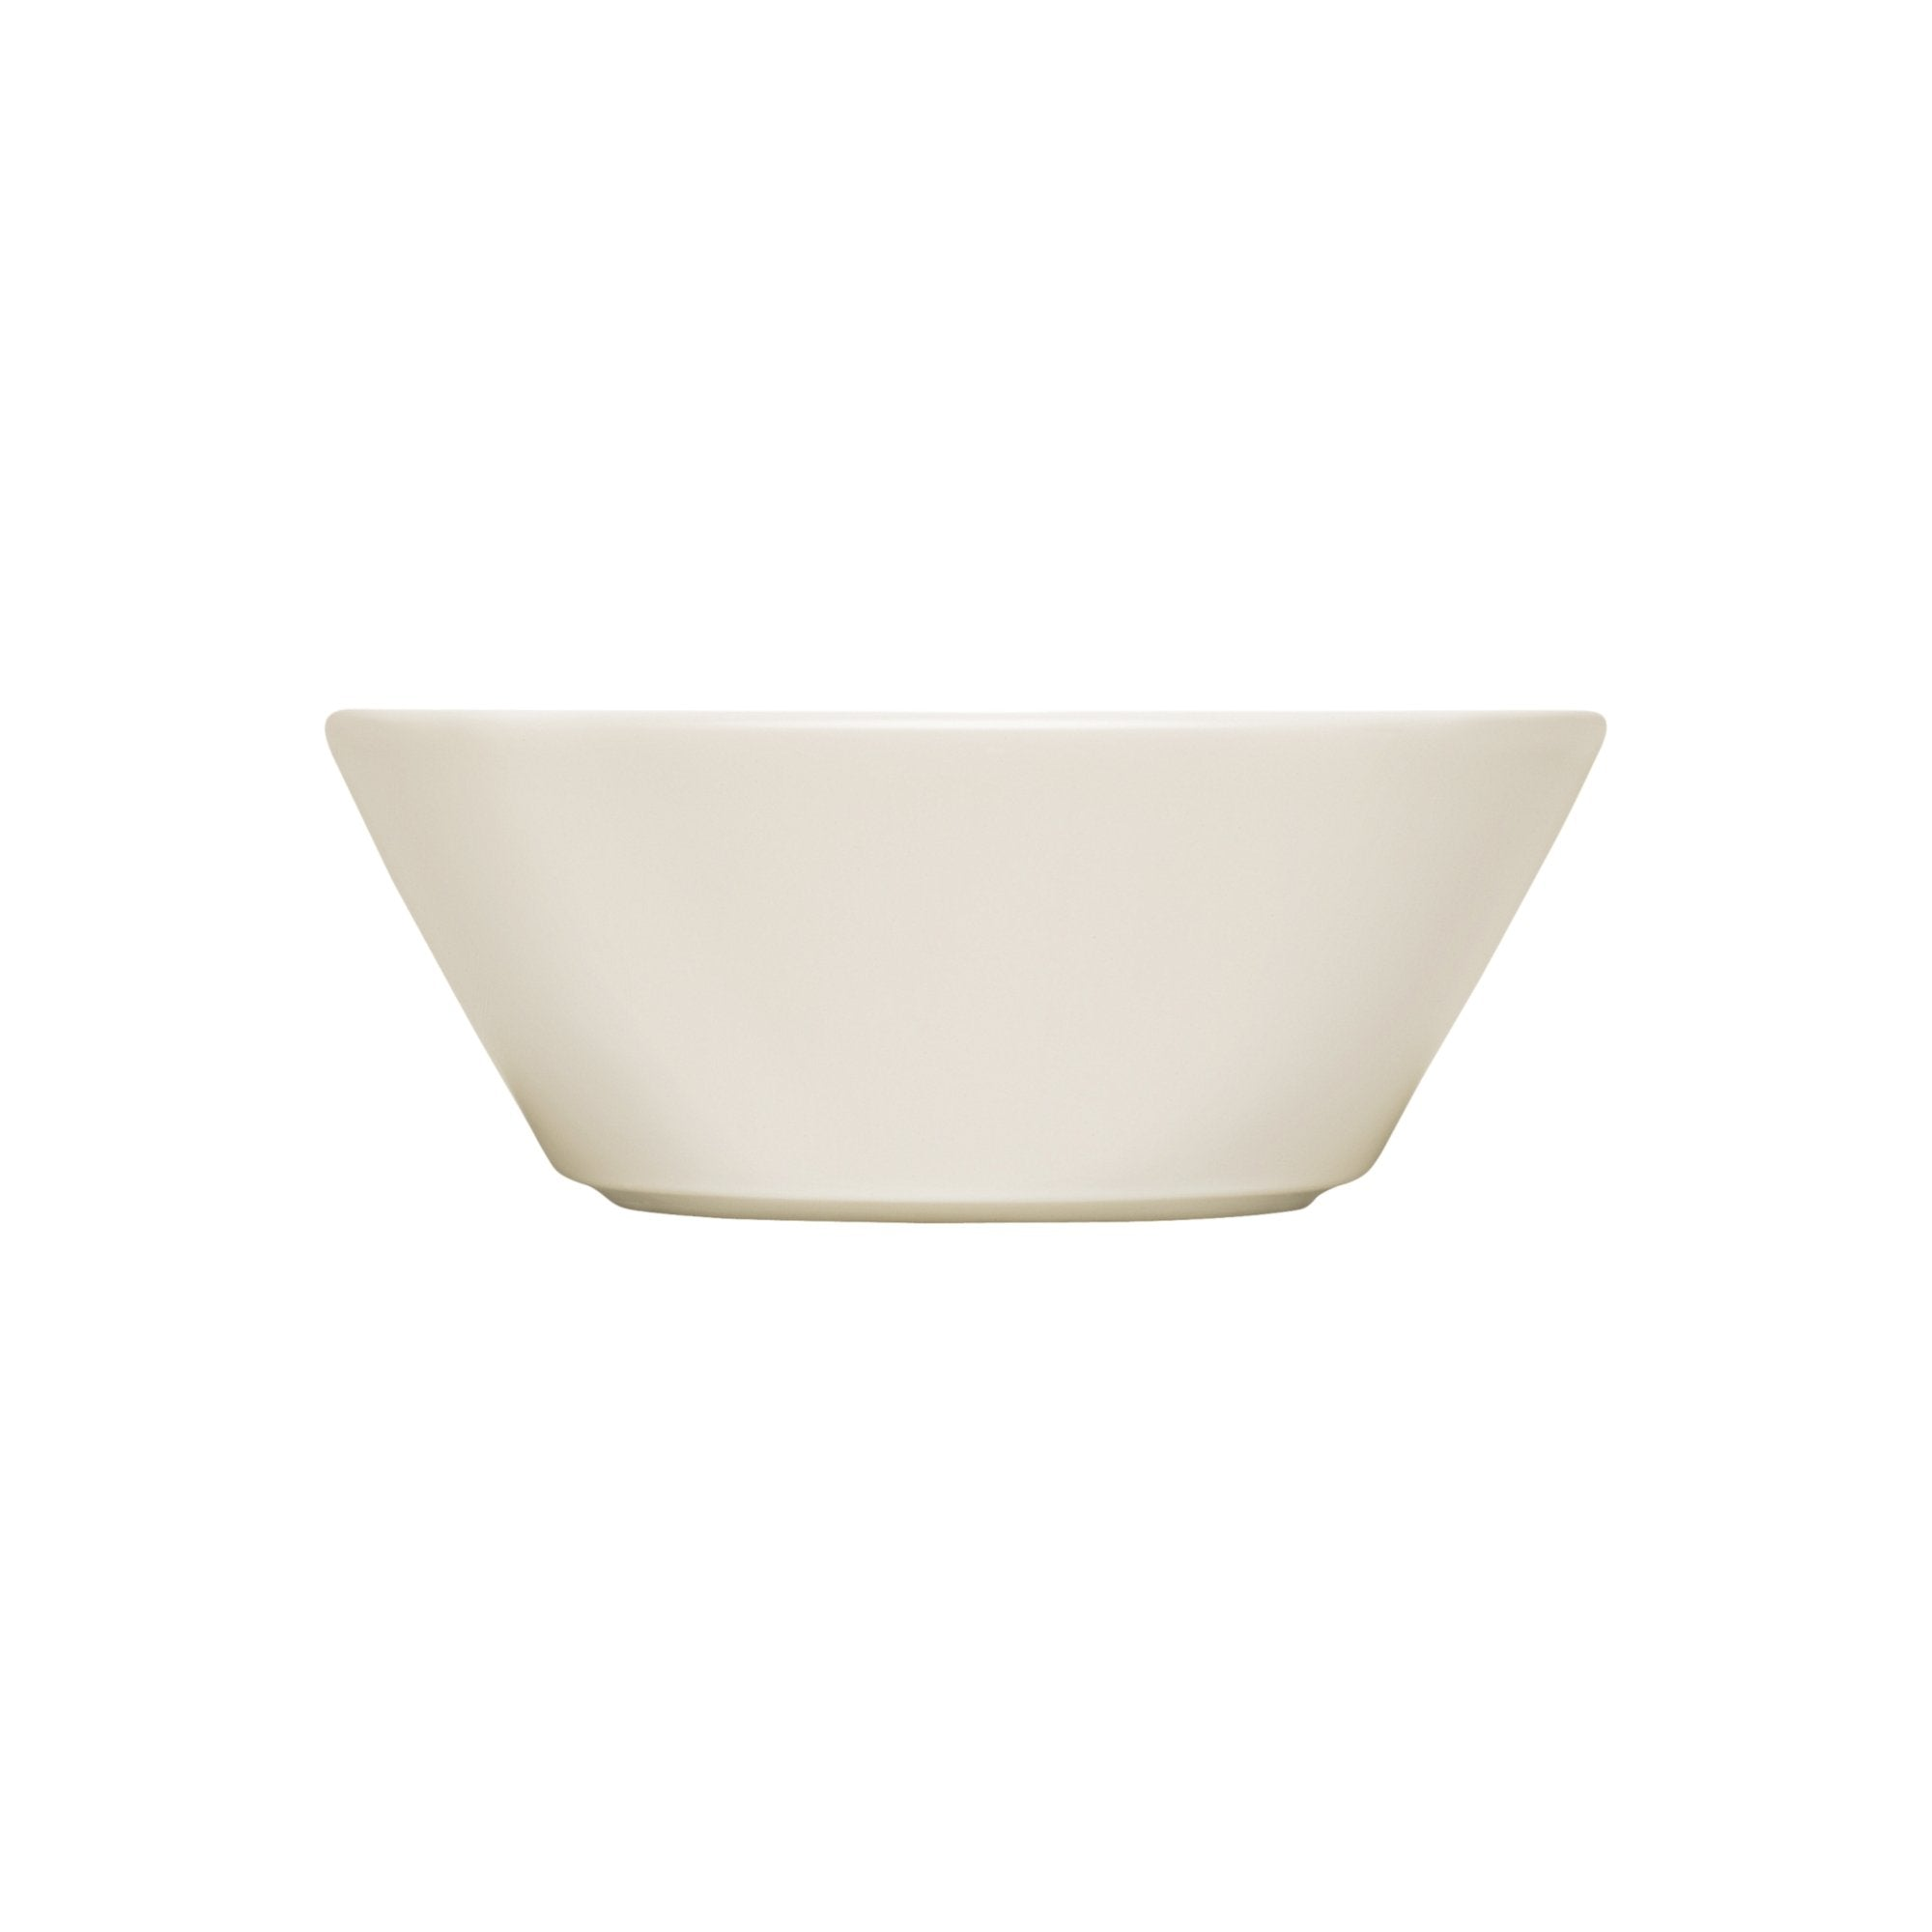 Iittala, Teema Soup/Cereal Bowl, assorted colors, - Placewares